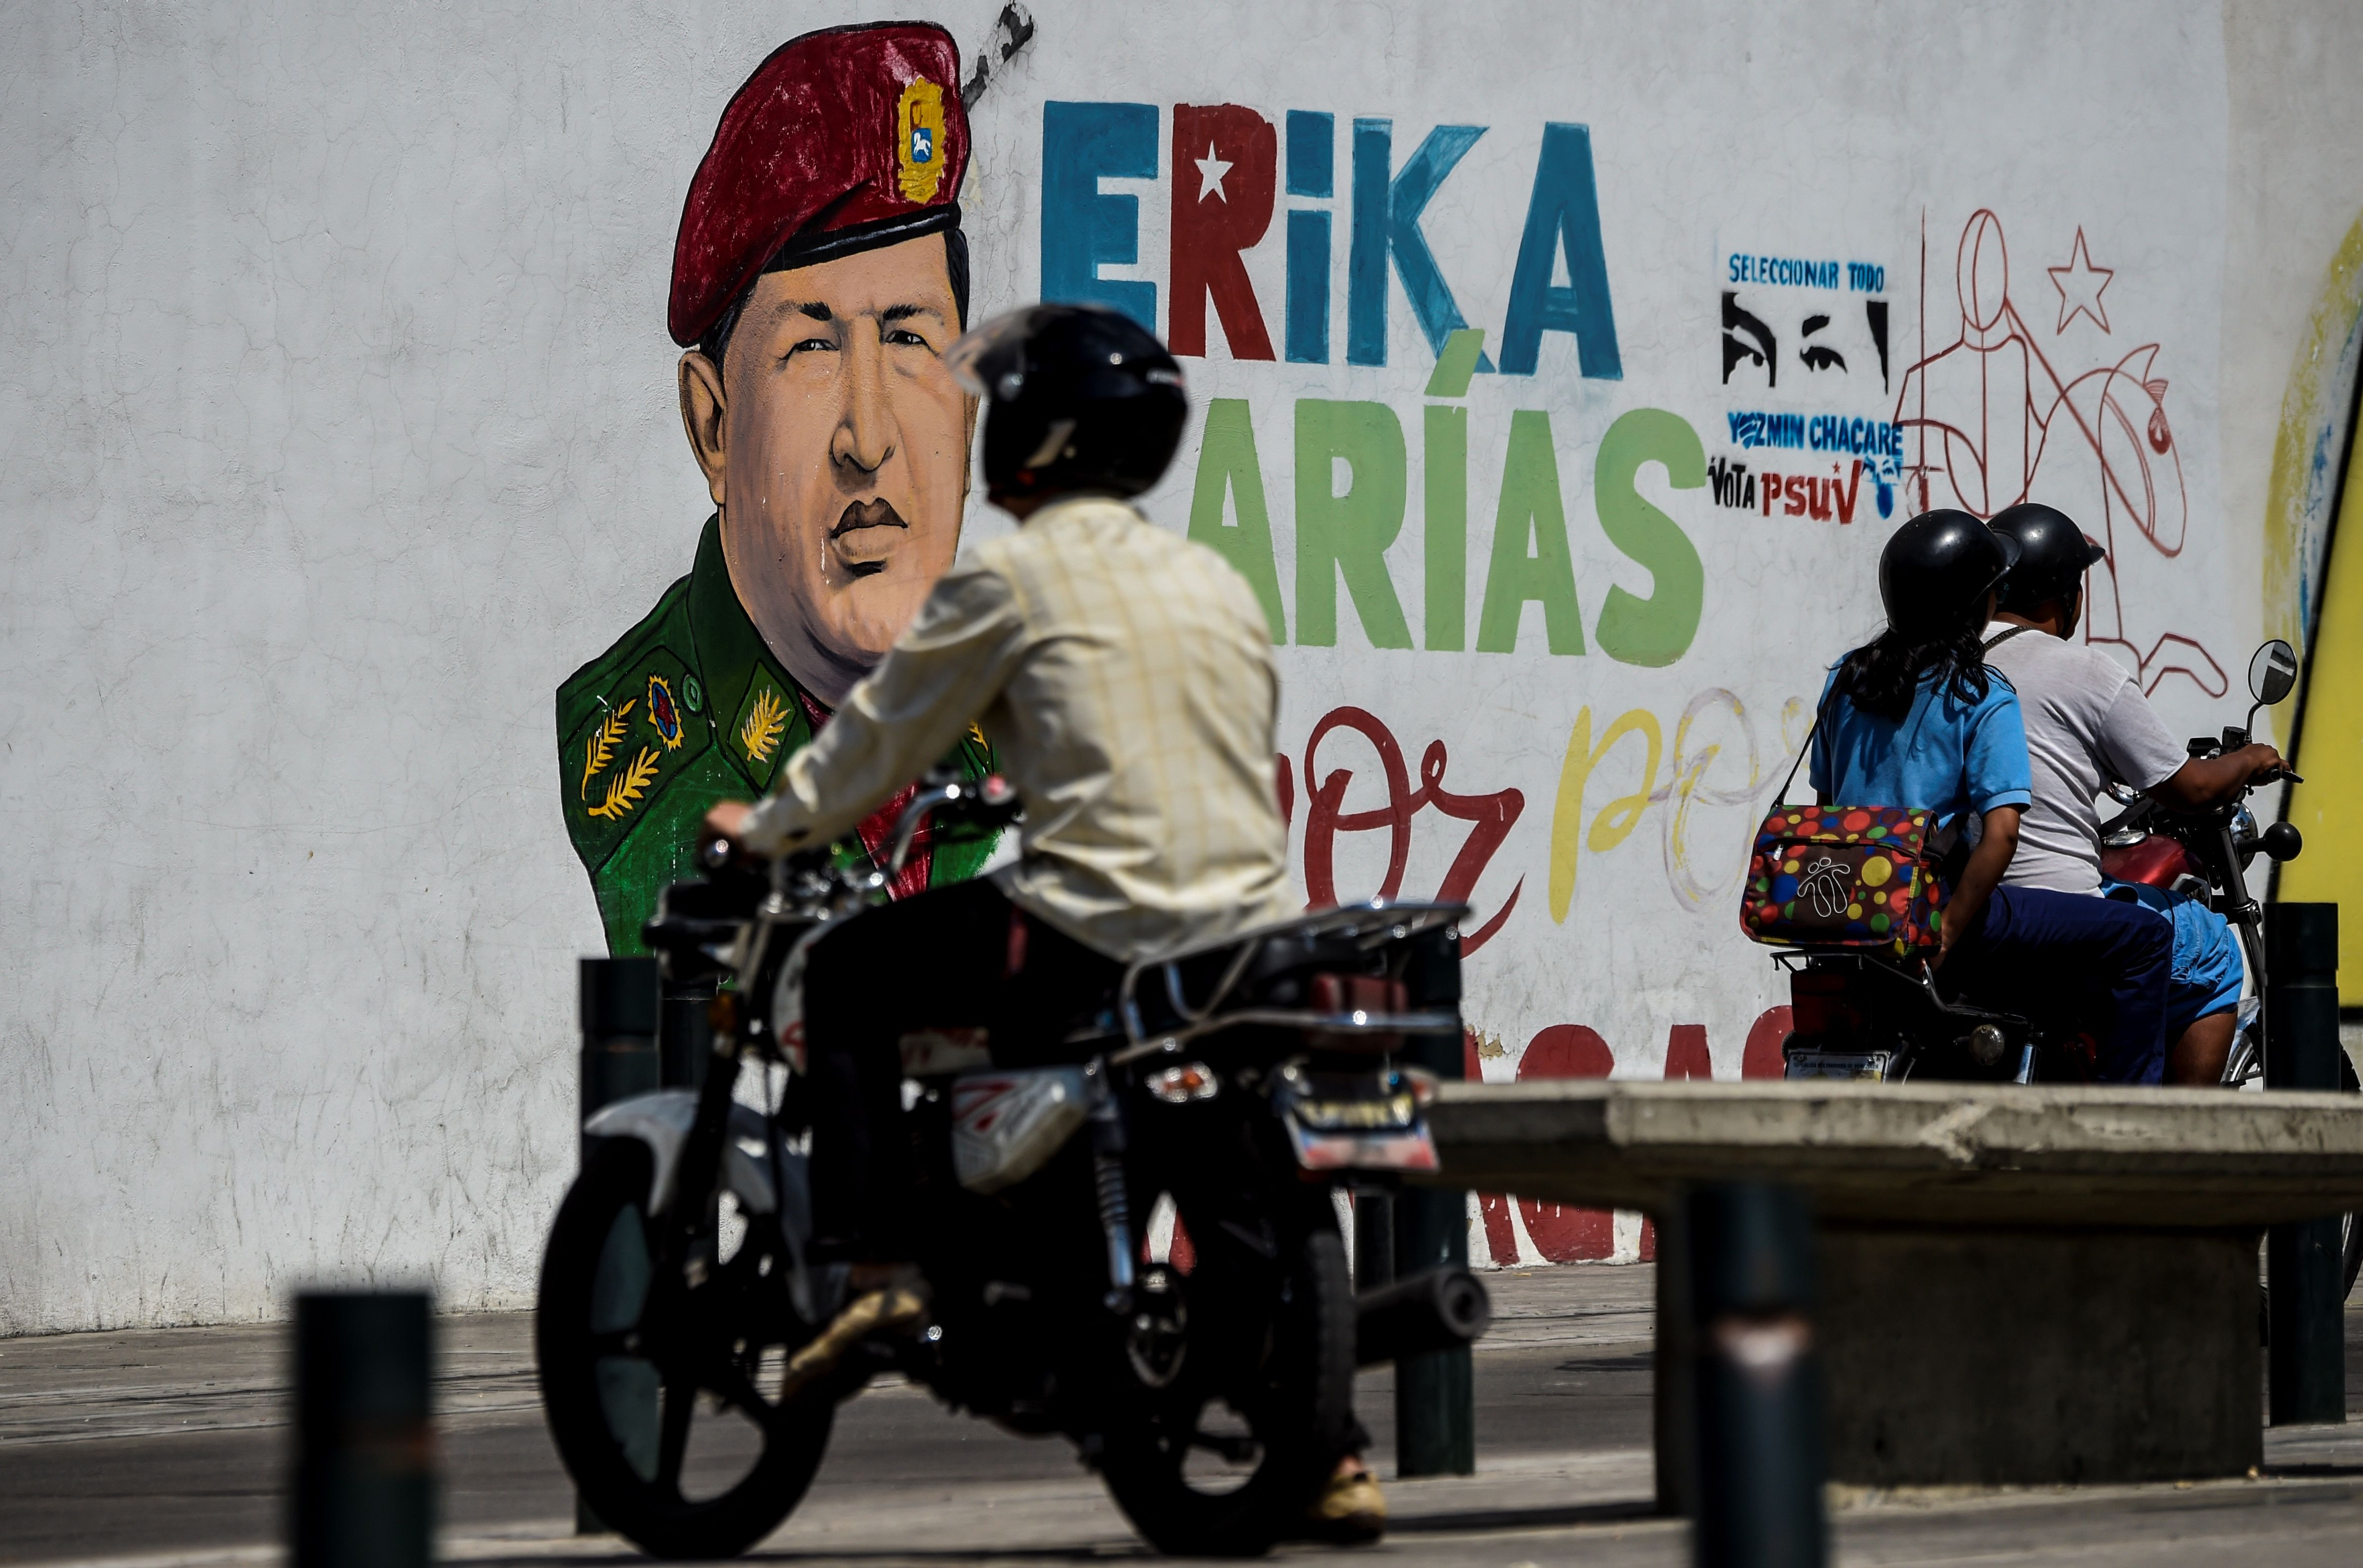 A motorcyclist drives past a painting of late Venezuelan President Hugo Chavez on a wall in Caracas on January 29, 2019. (JUAN BARRETO/AFP/Getty Images)